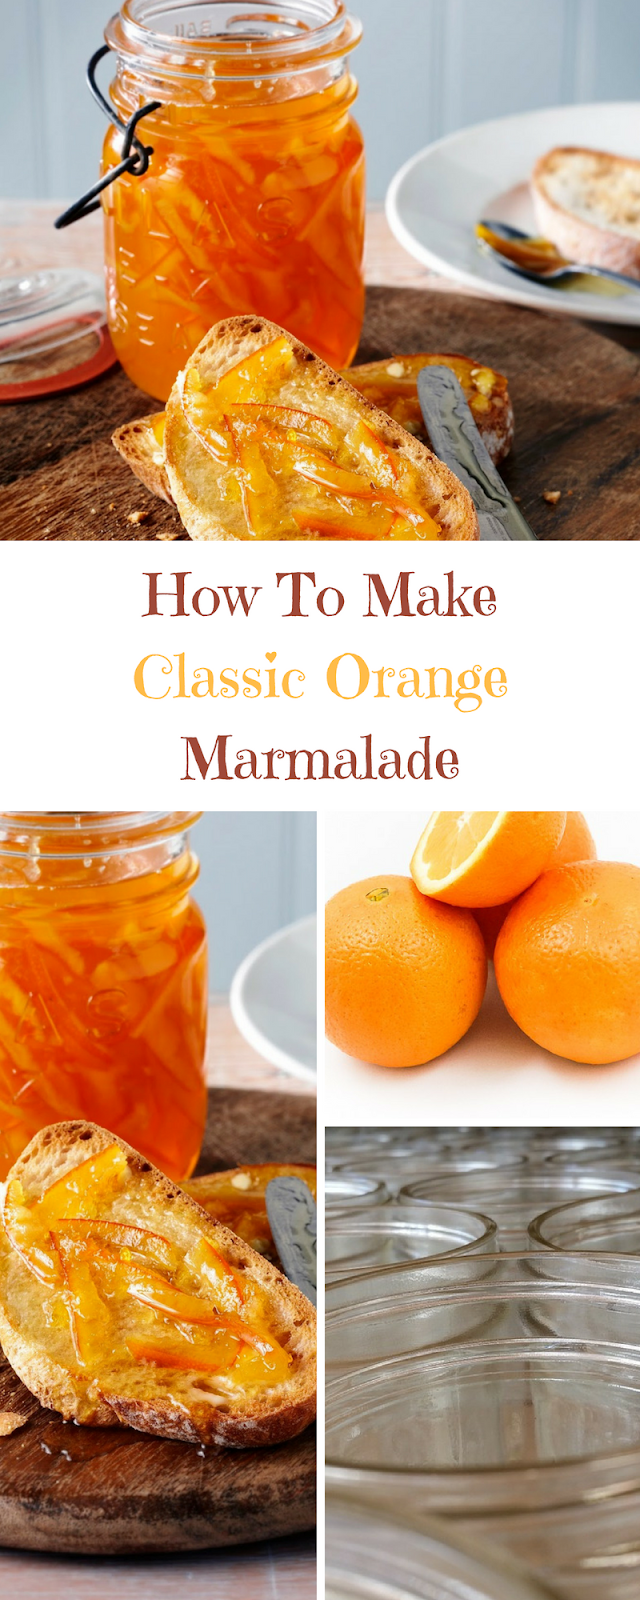 Classic Orange Marmalade